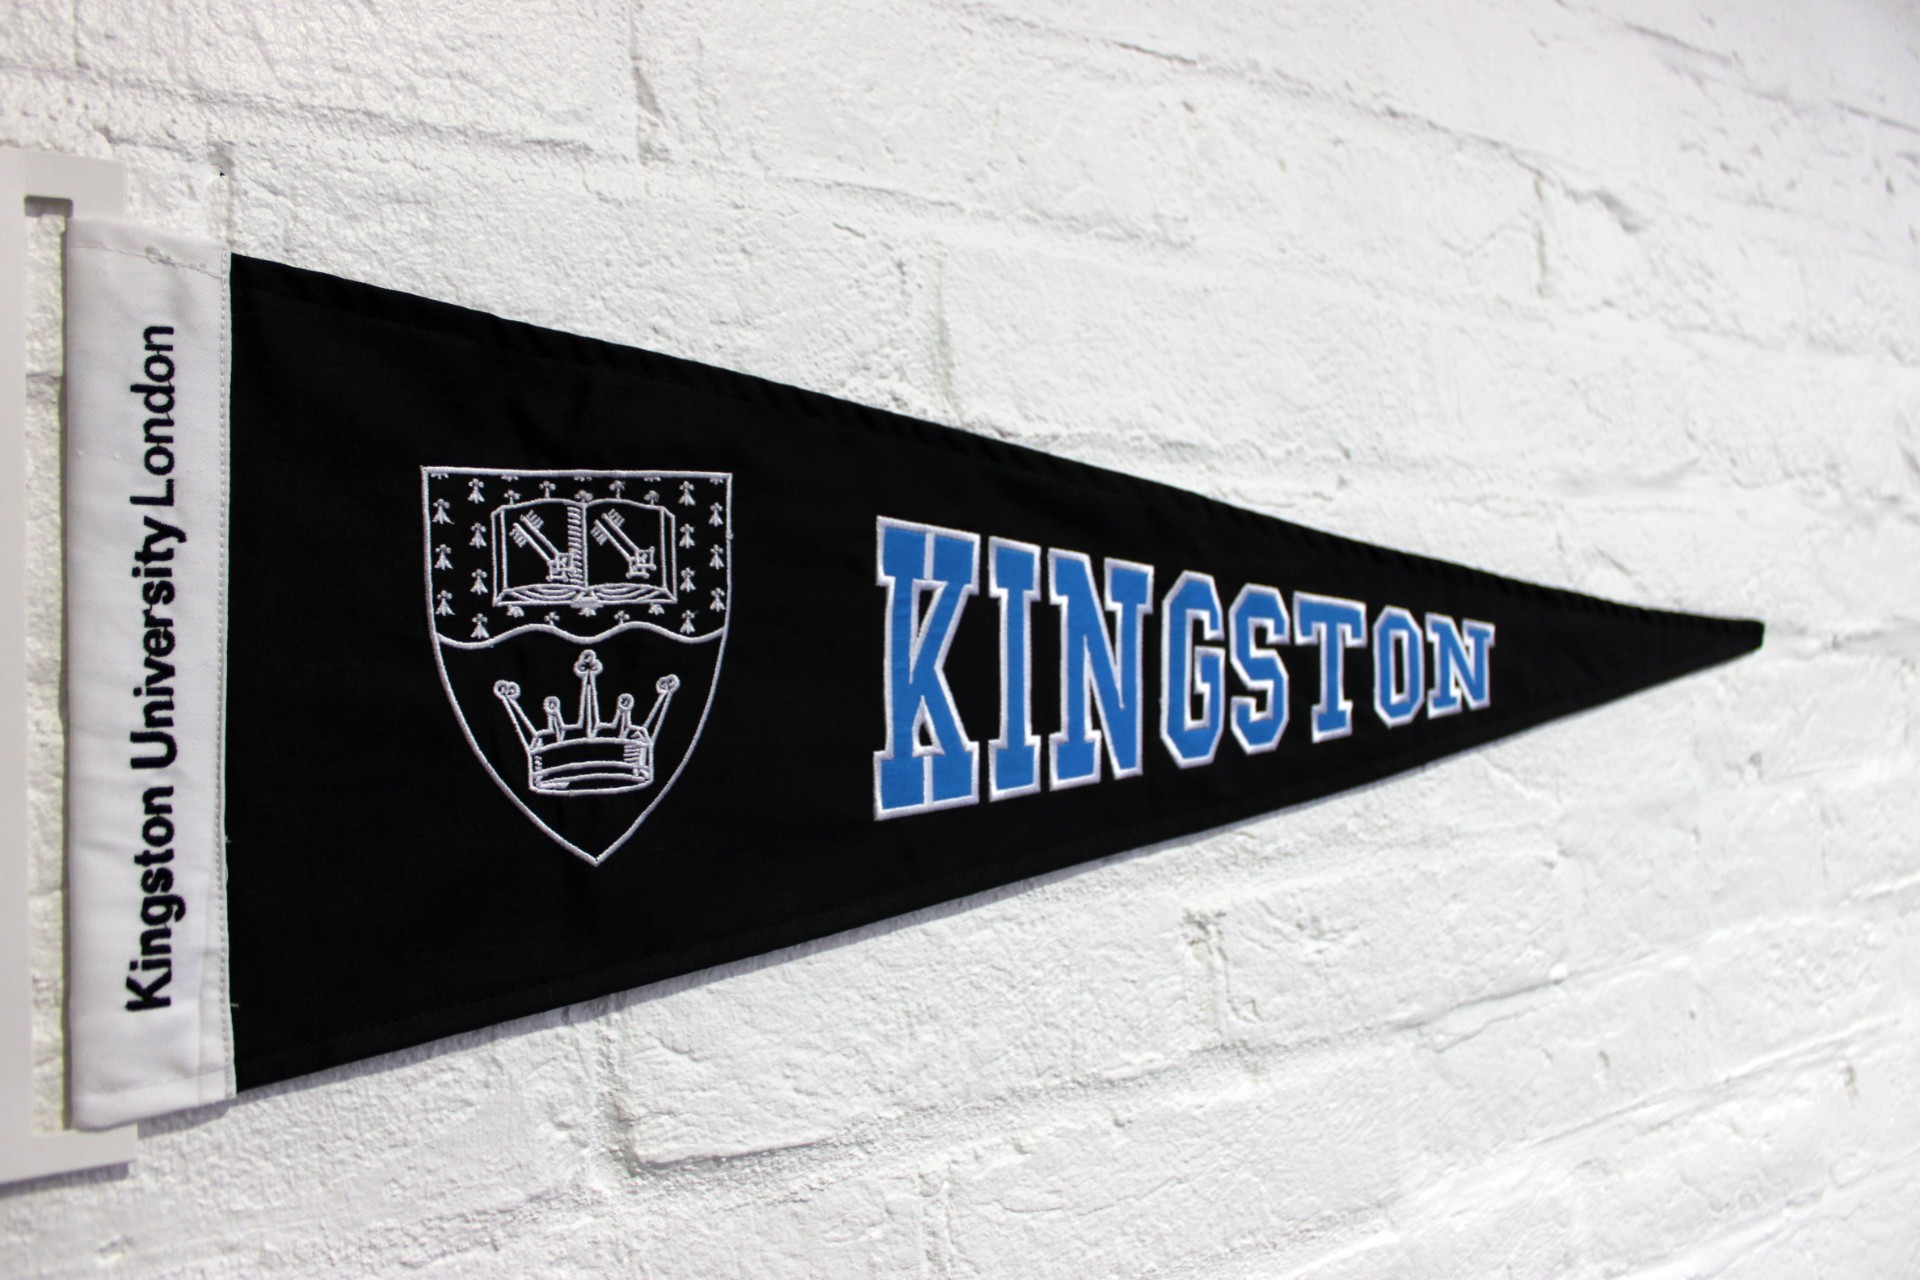 Kingston University Pennant Flag